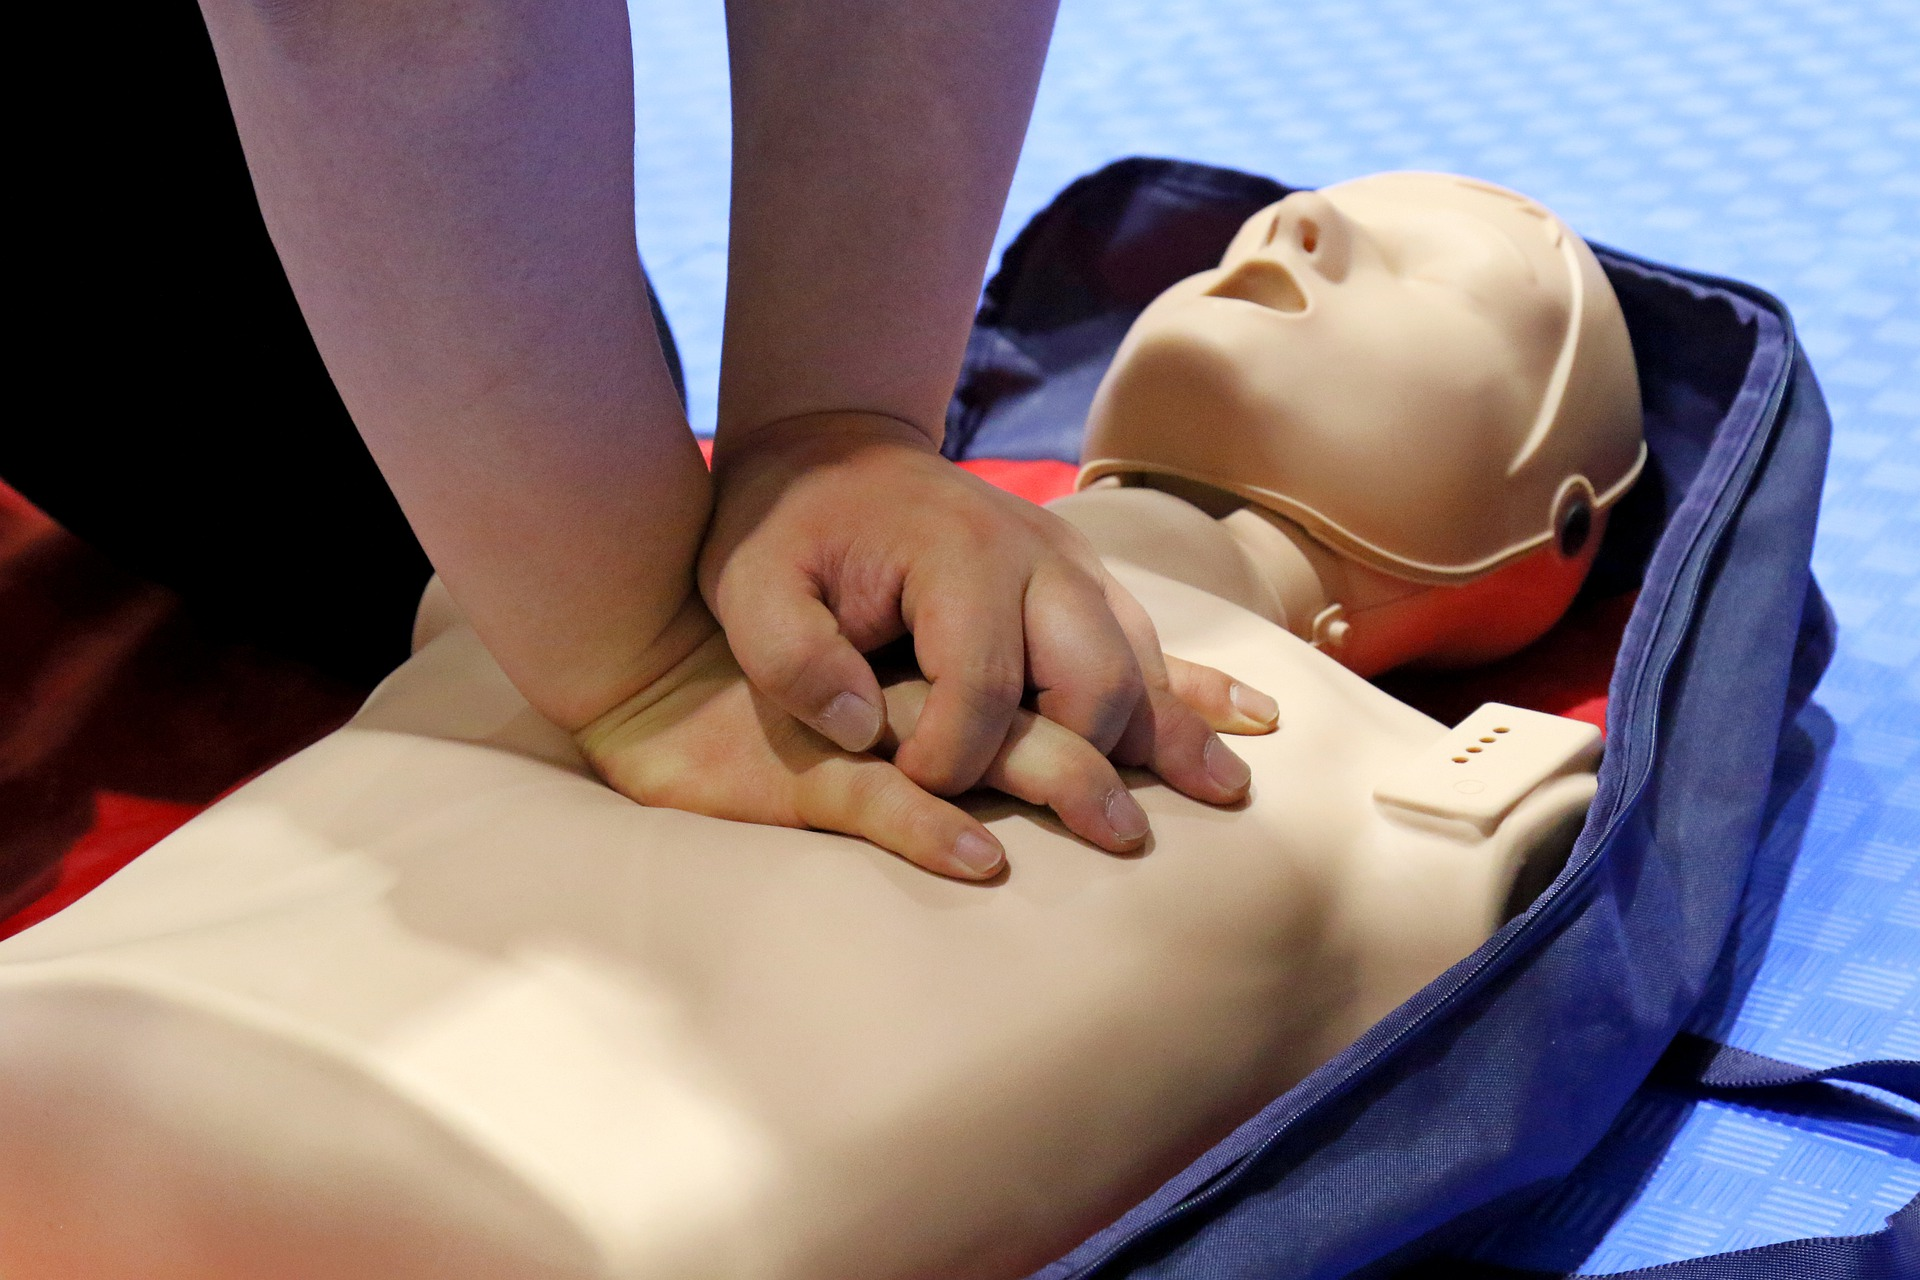 Image of someone performing CPR on a dummy